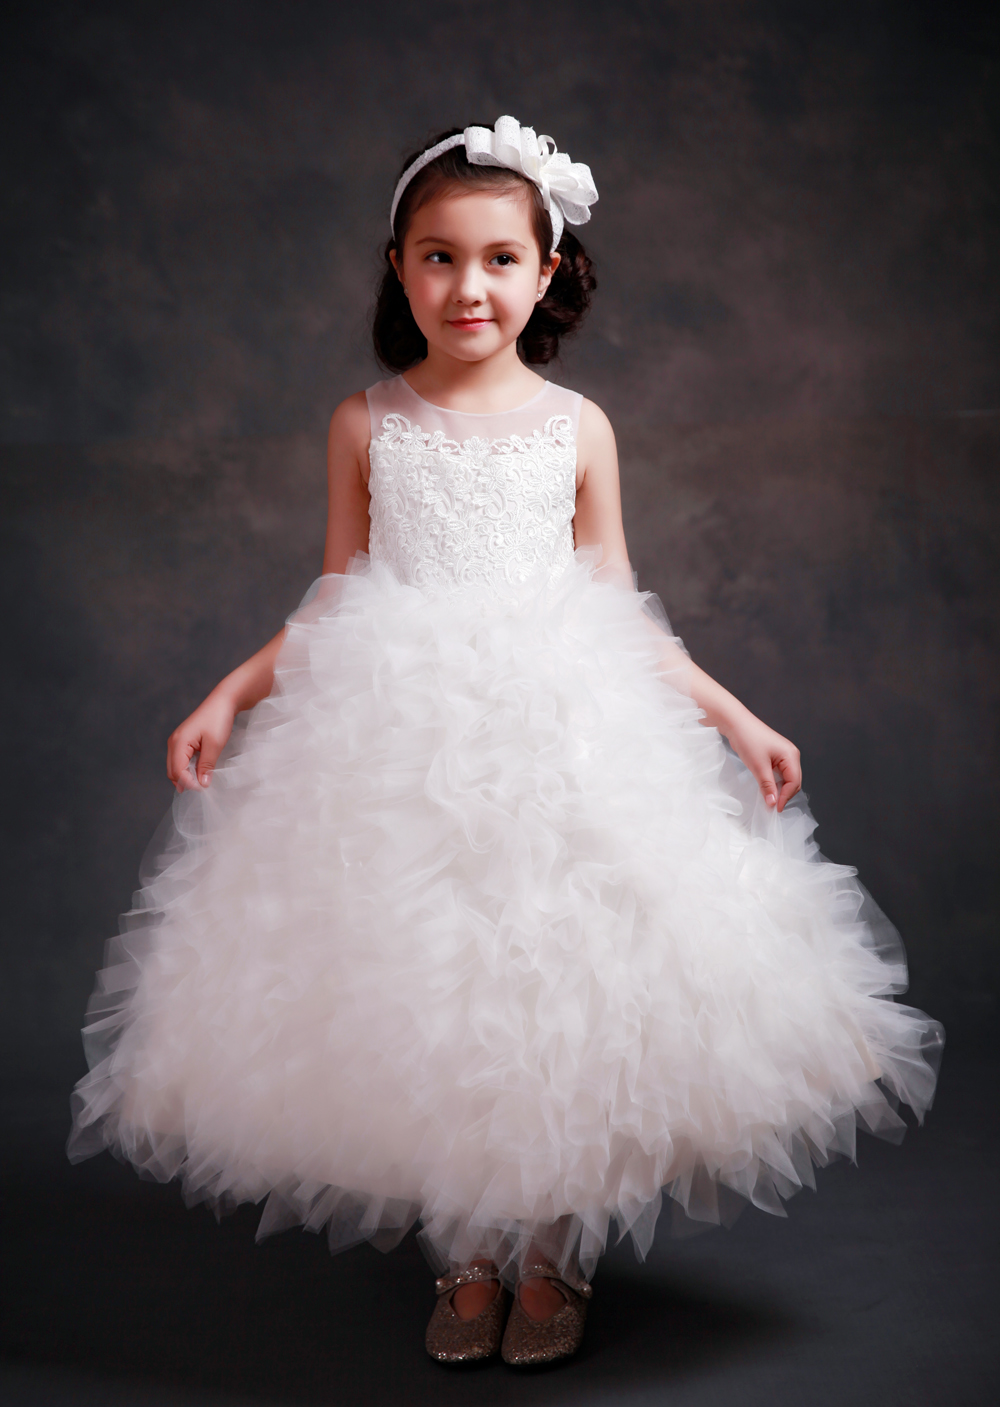 Puffy Girls Princess Pageant Dress Tulle Ruffles Tiered Evening Party Kids Ball Gowns Crystal Bow First Communion DressPuffy Girls Princess Pageant Dress Tulle Ruffles Tiered Evening Party Kids Ball Gowns Crystal Bow First Communion Dress